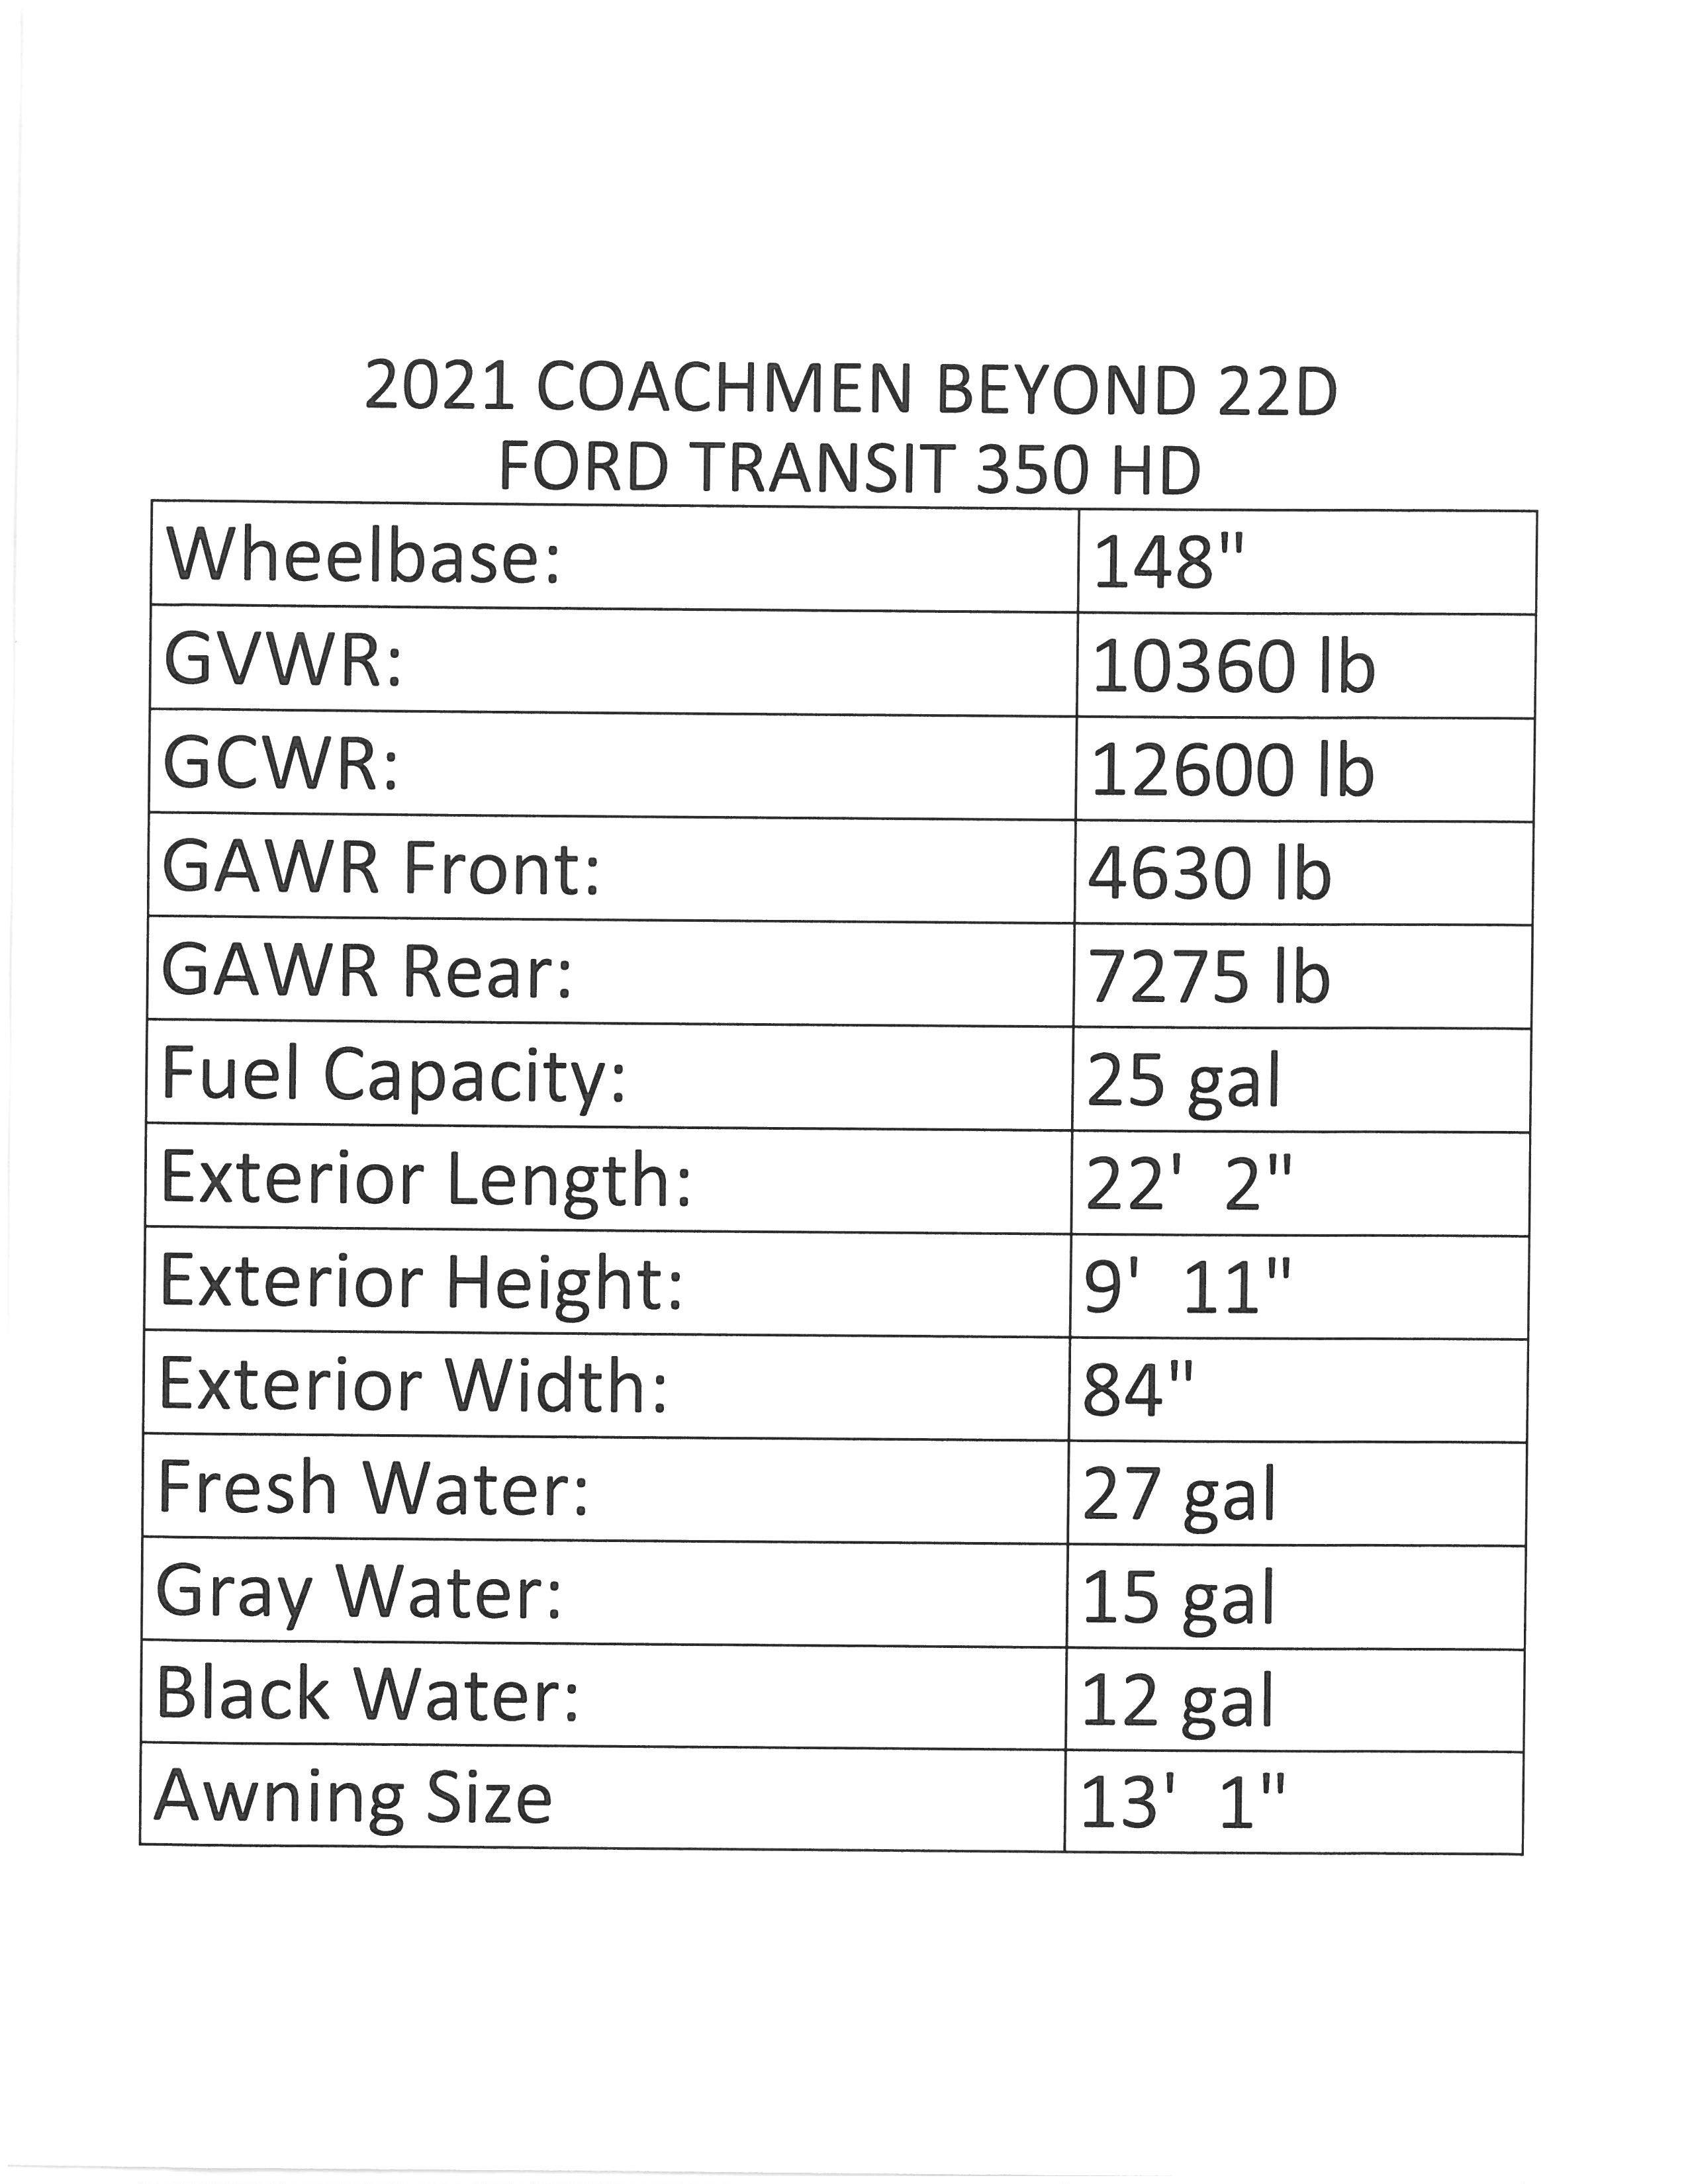 2021 Coachmen Beyond 22D RWD Thumbnail